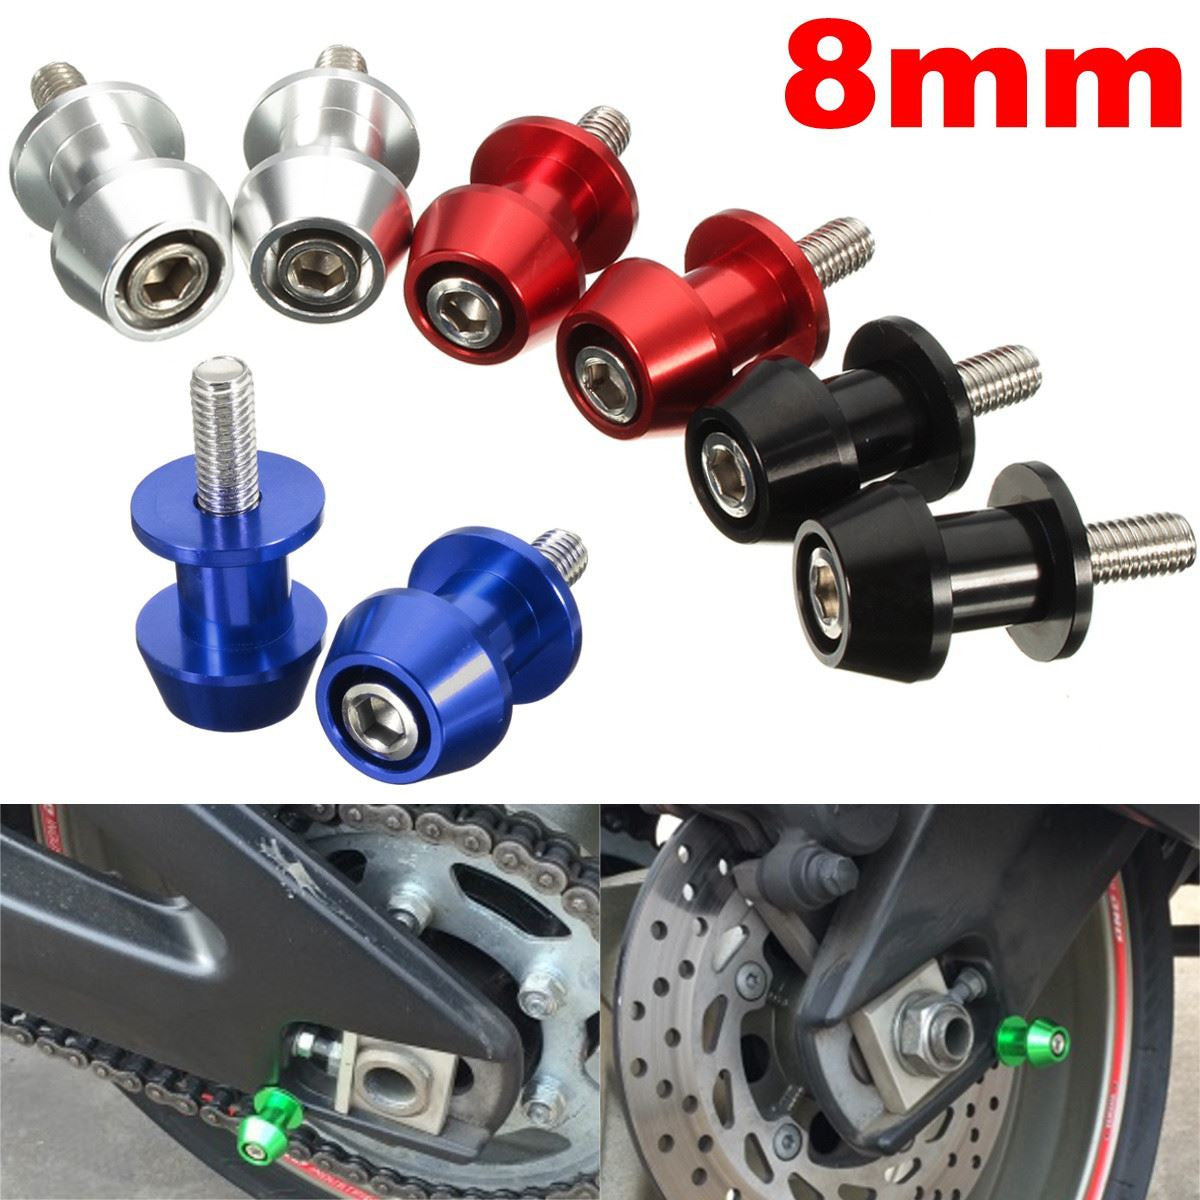 2 Pieces Universal 8mm Aluminum Swingarm Spools Sliders for Honda